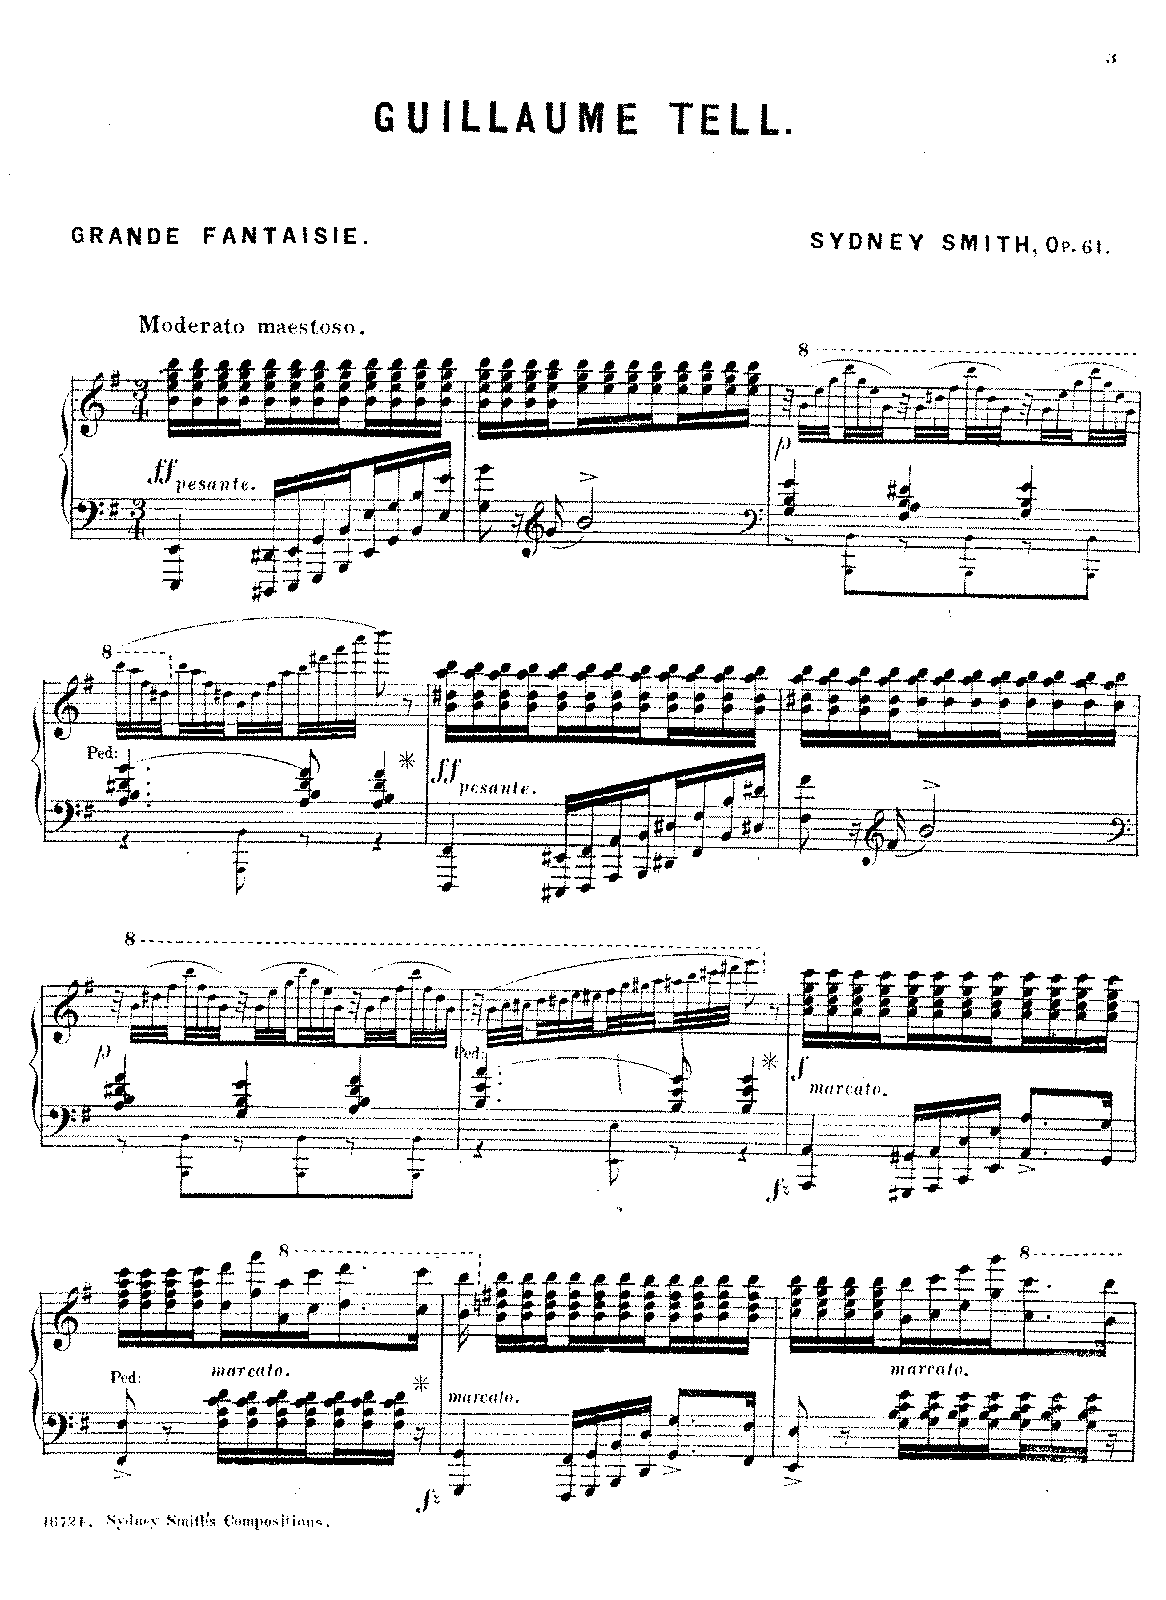 PMLP112964-Smith, Sydney op.61 rossini william tell.pdf